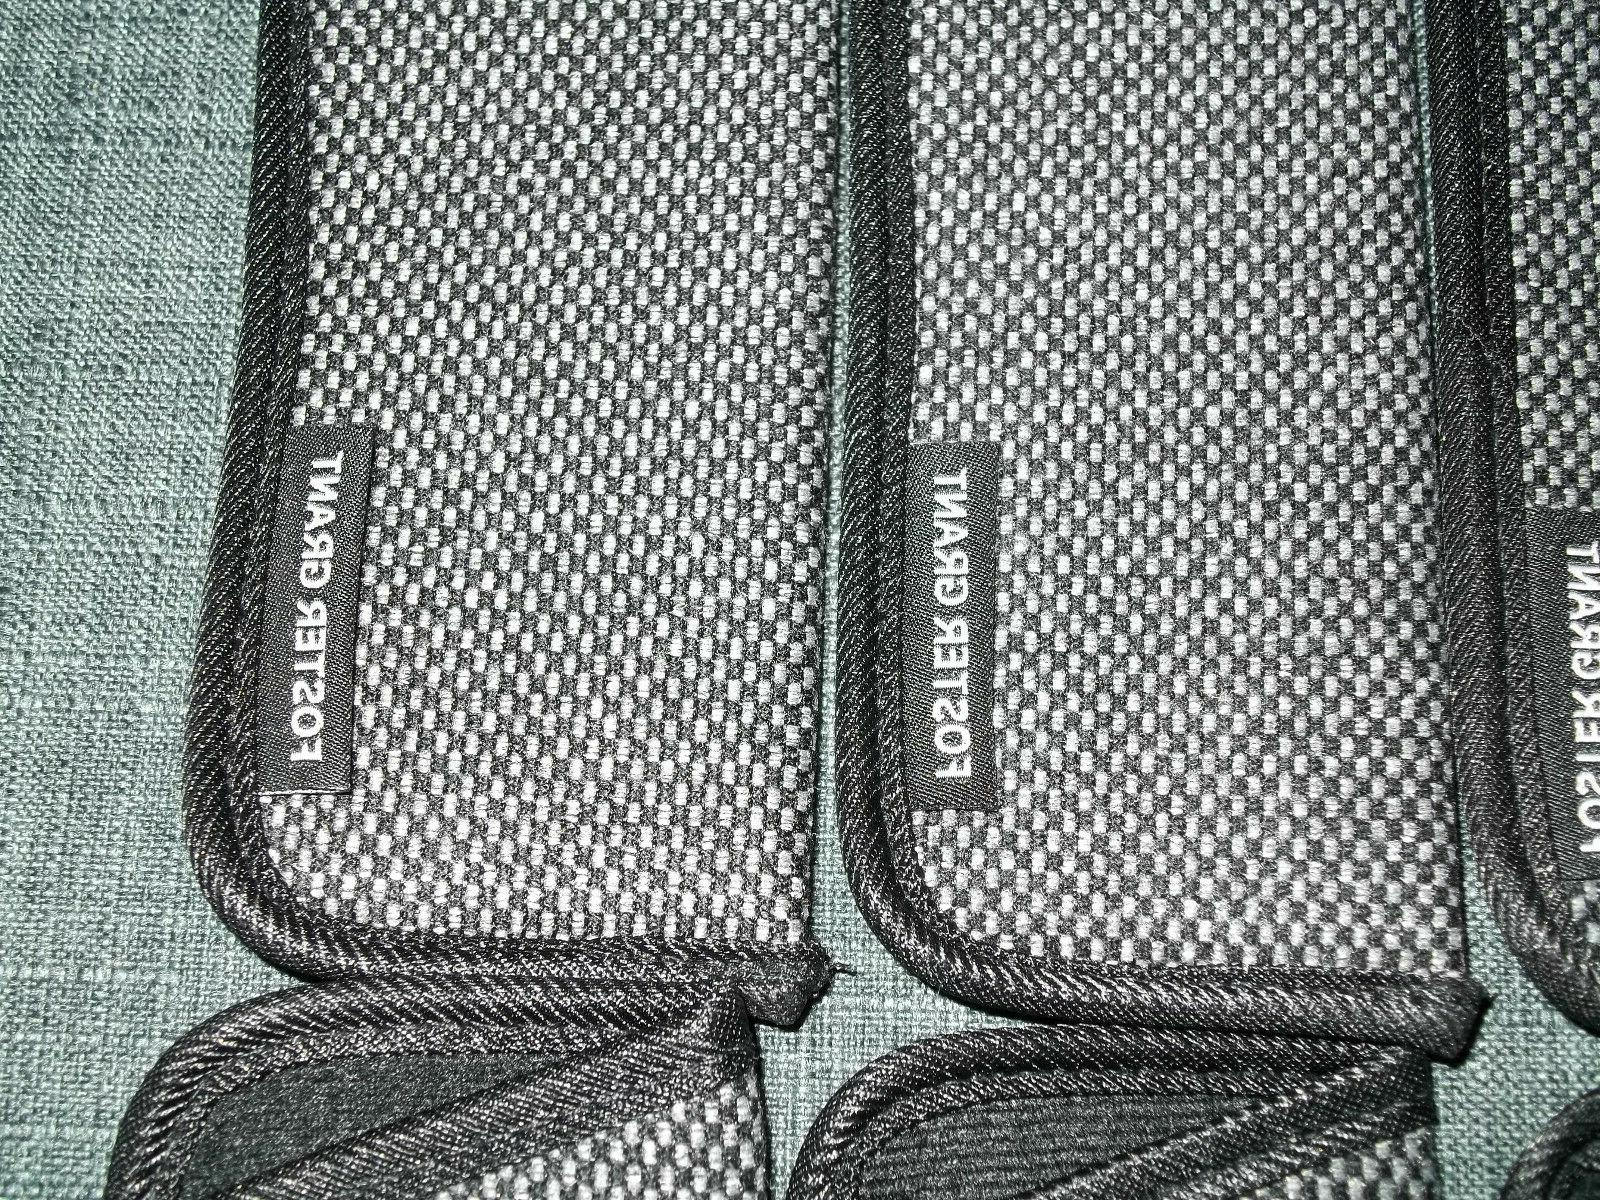 FOSTER GRANT Cases, Sleeves, BLACK GRAY CHECKERED, Lot 10